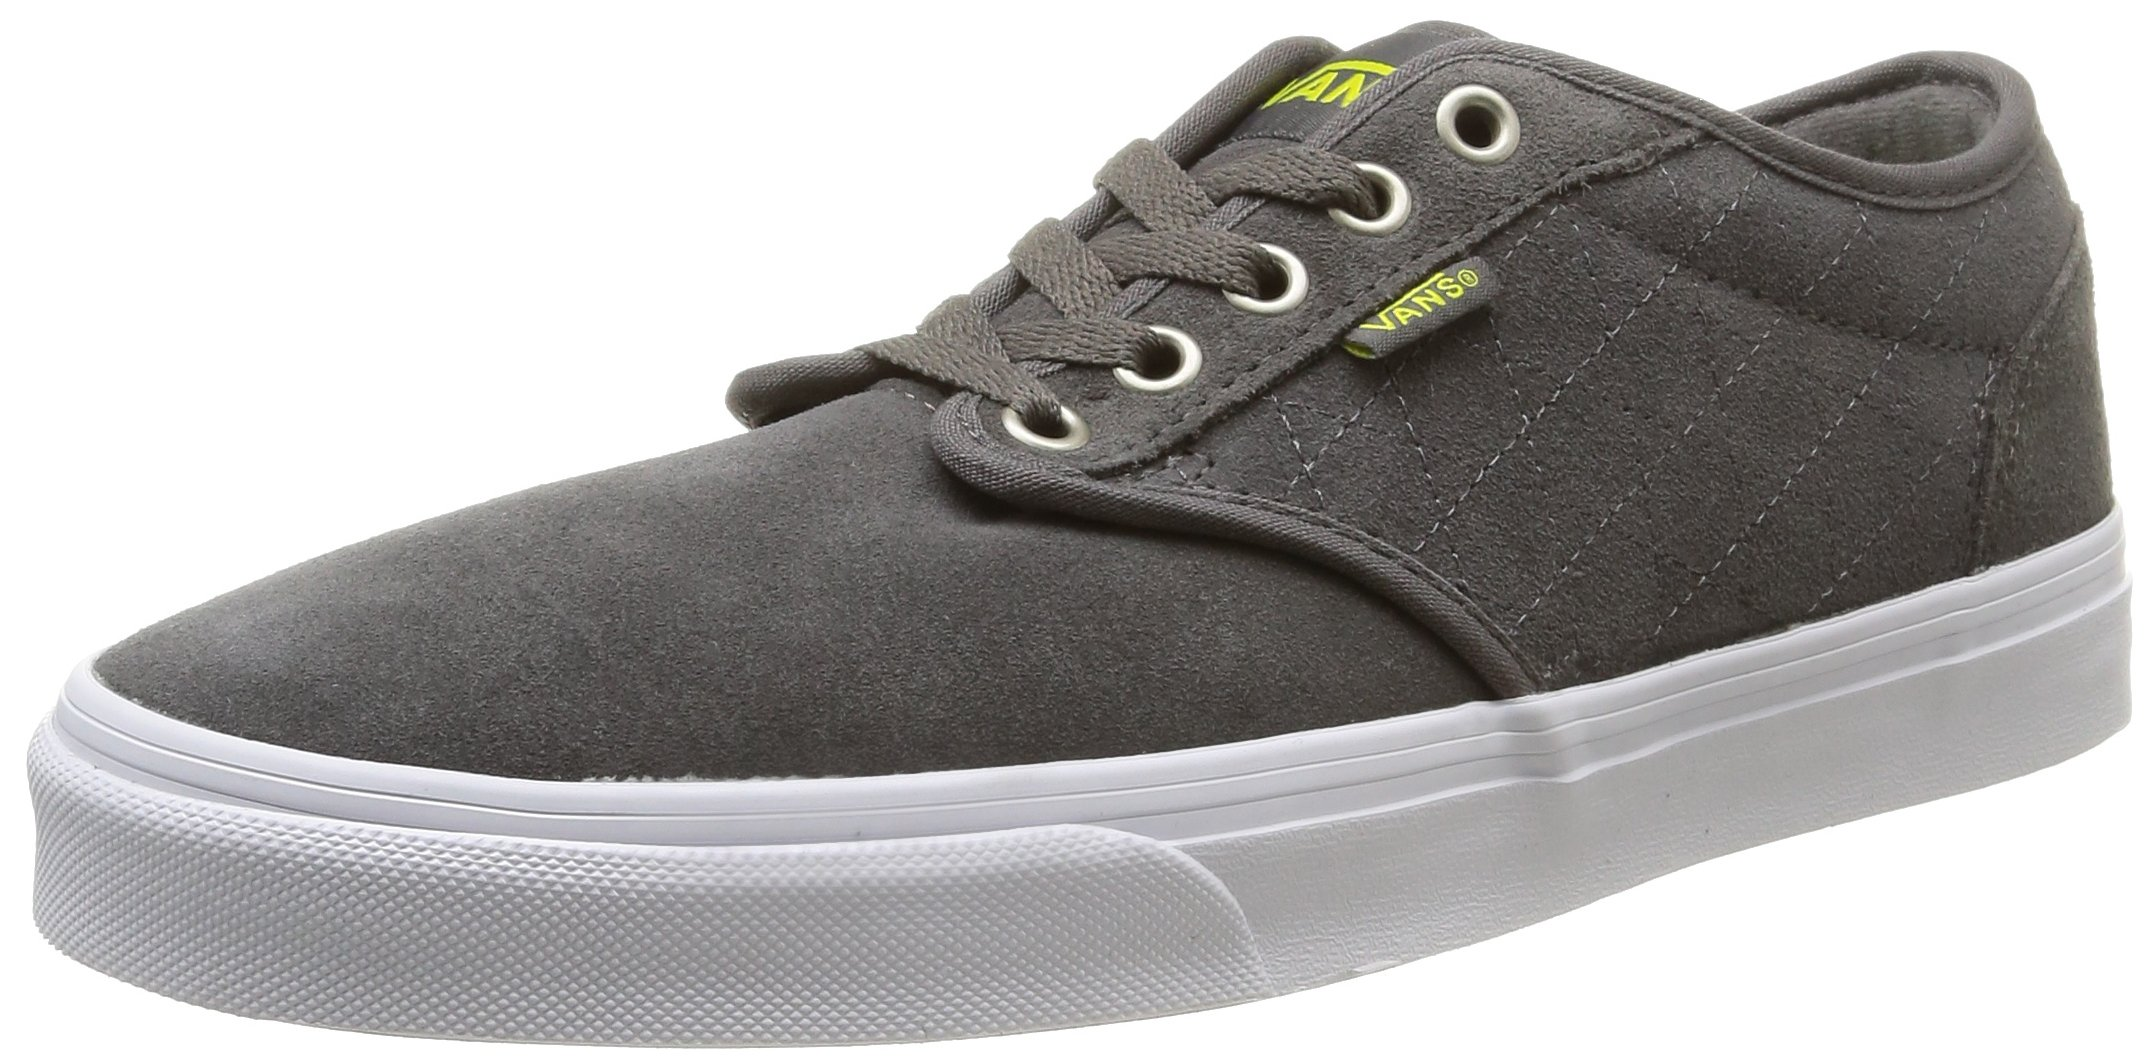 marshmallow41 Eu Basses pewter Vans Atwood M QuiltSneakers HommeGrisquilt Y7gbf6yv